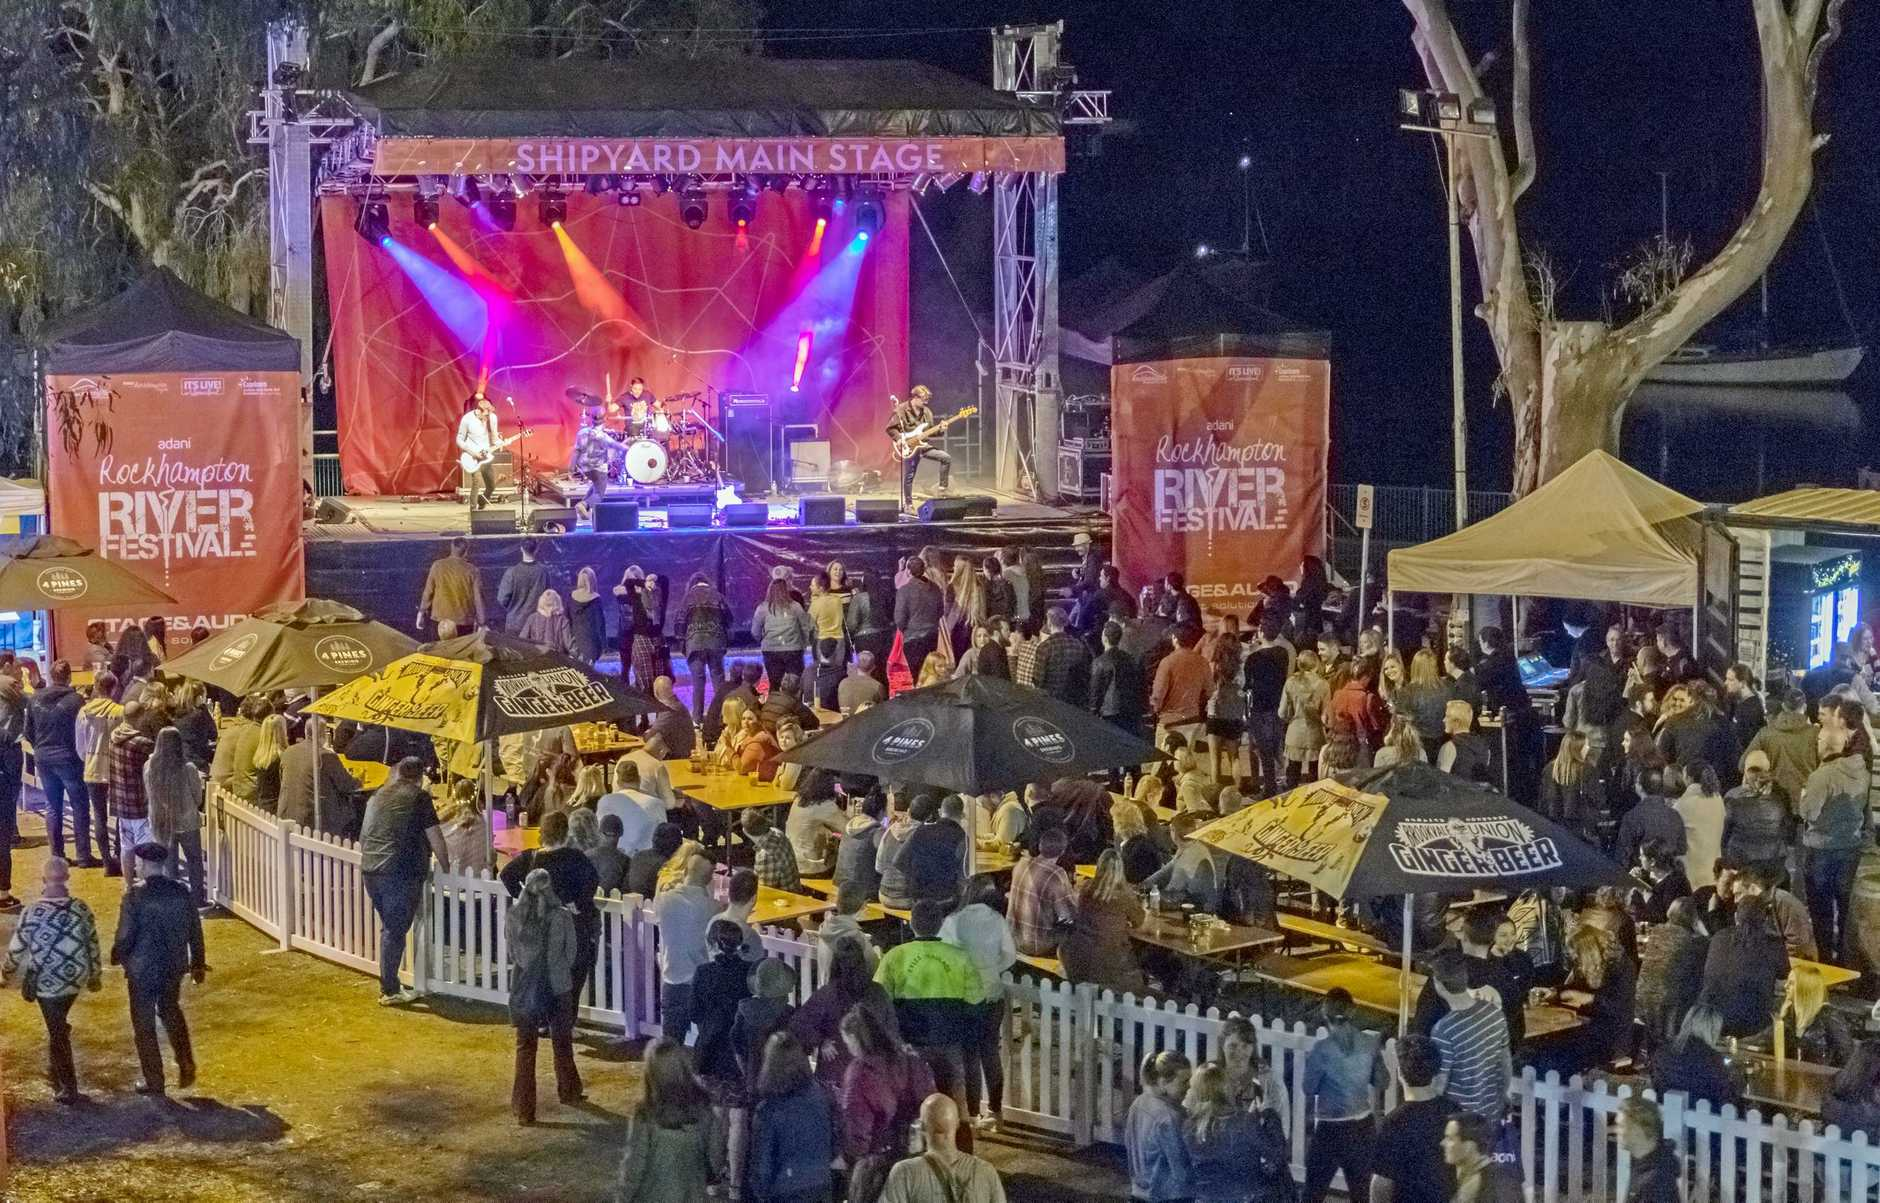 Rockhampton River Festival 2018 Riverfront Entertainment